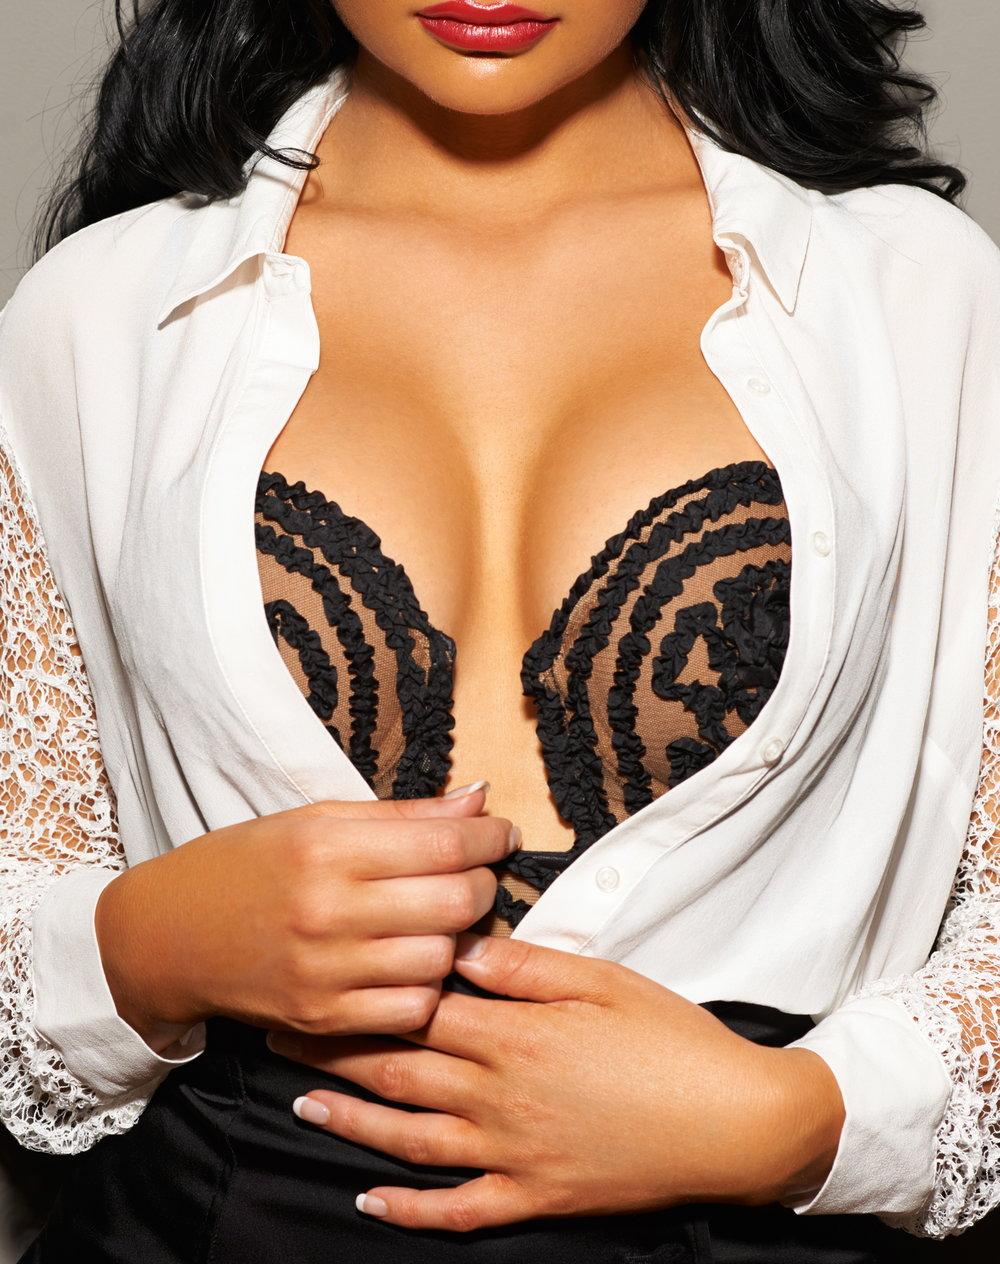 VIVIENNE BLACK - PRIVATE SYDNEY ESCORT